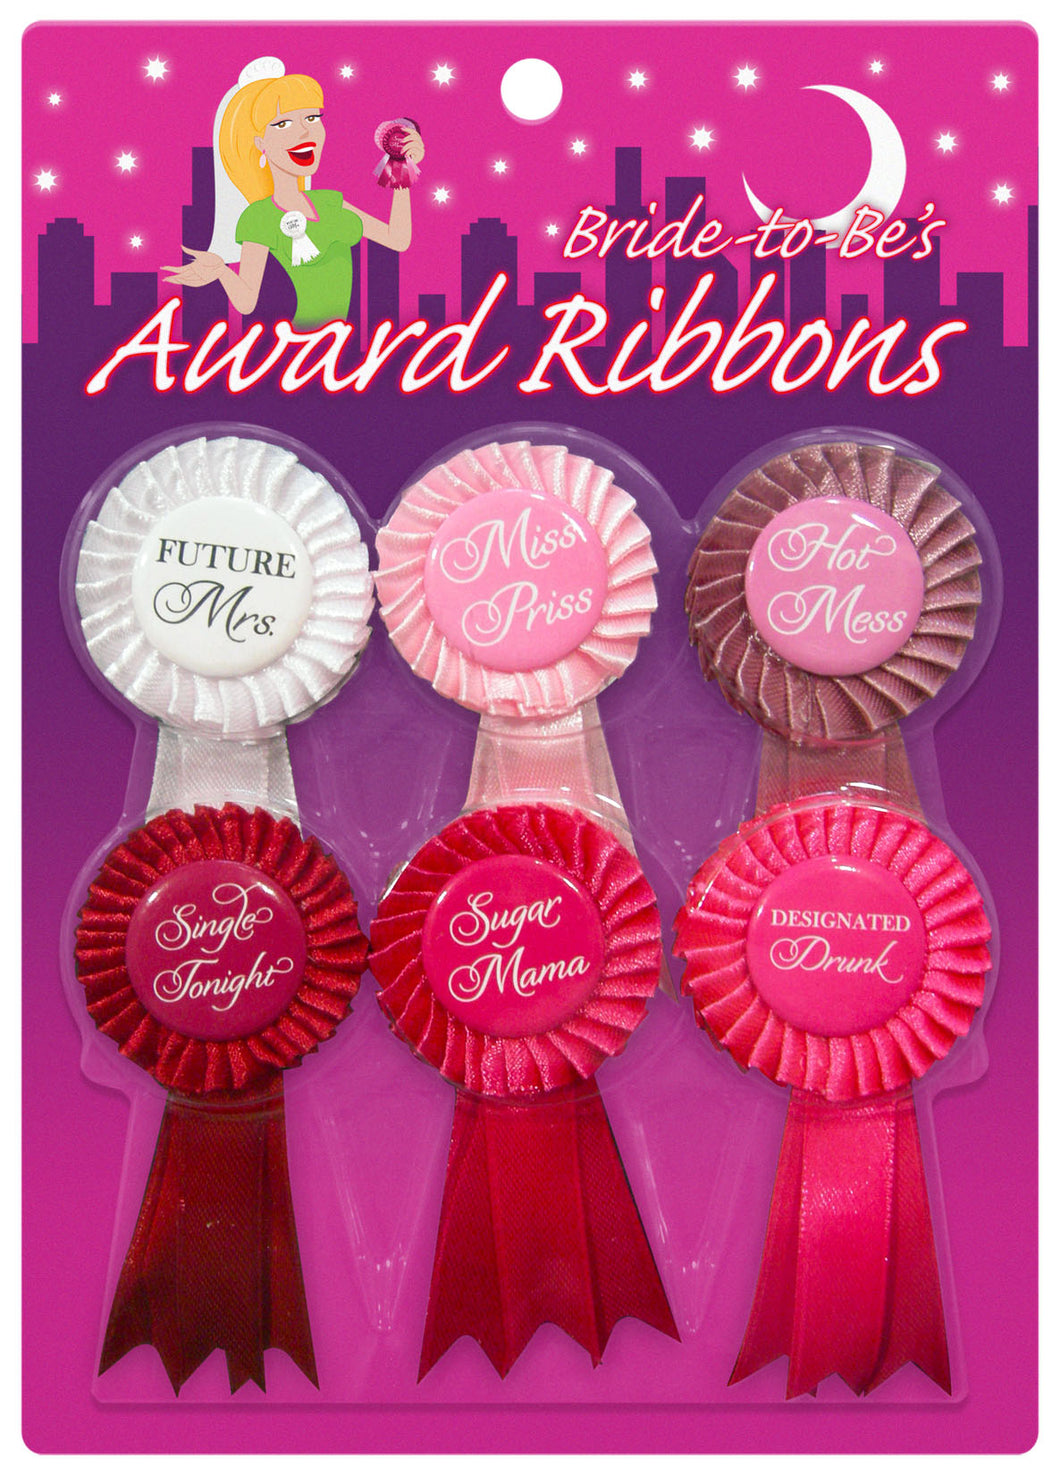 Bride-to-Be Award Ribbons KG-NVS17